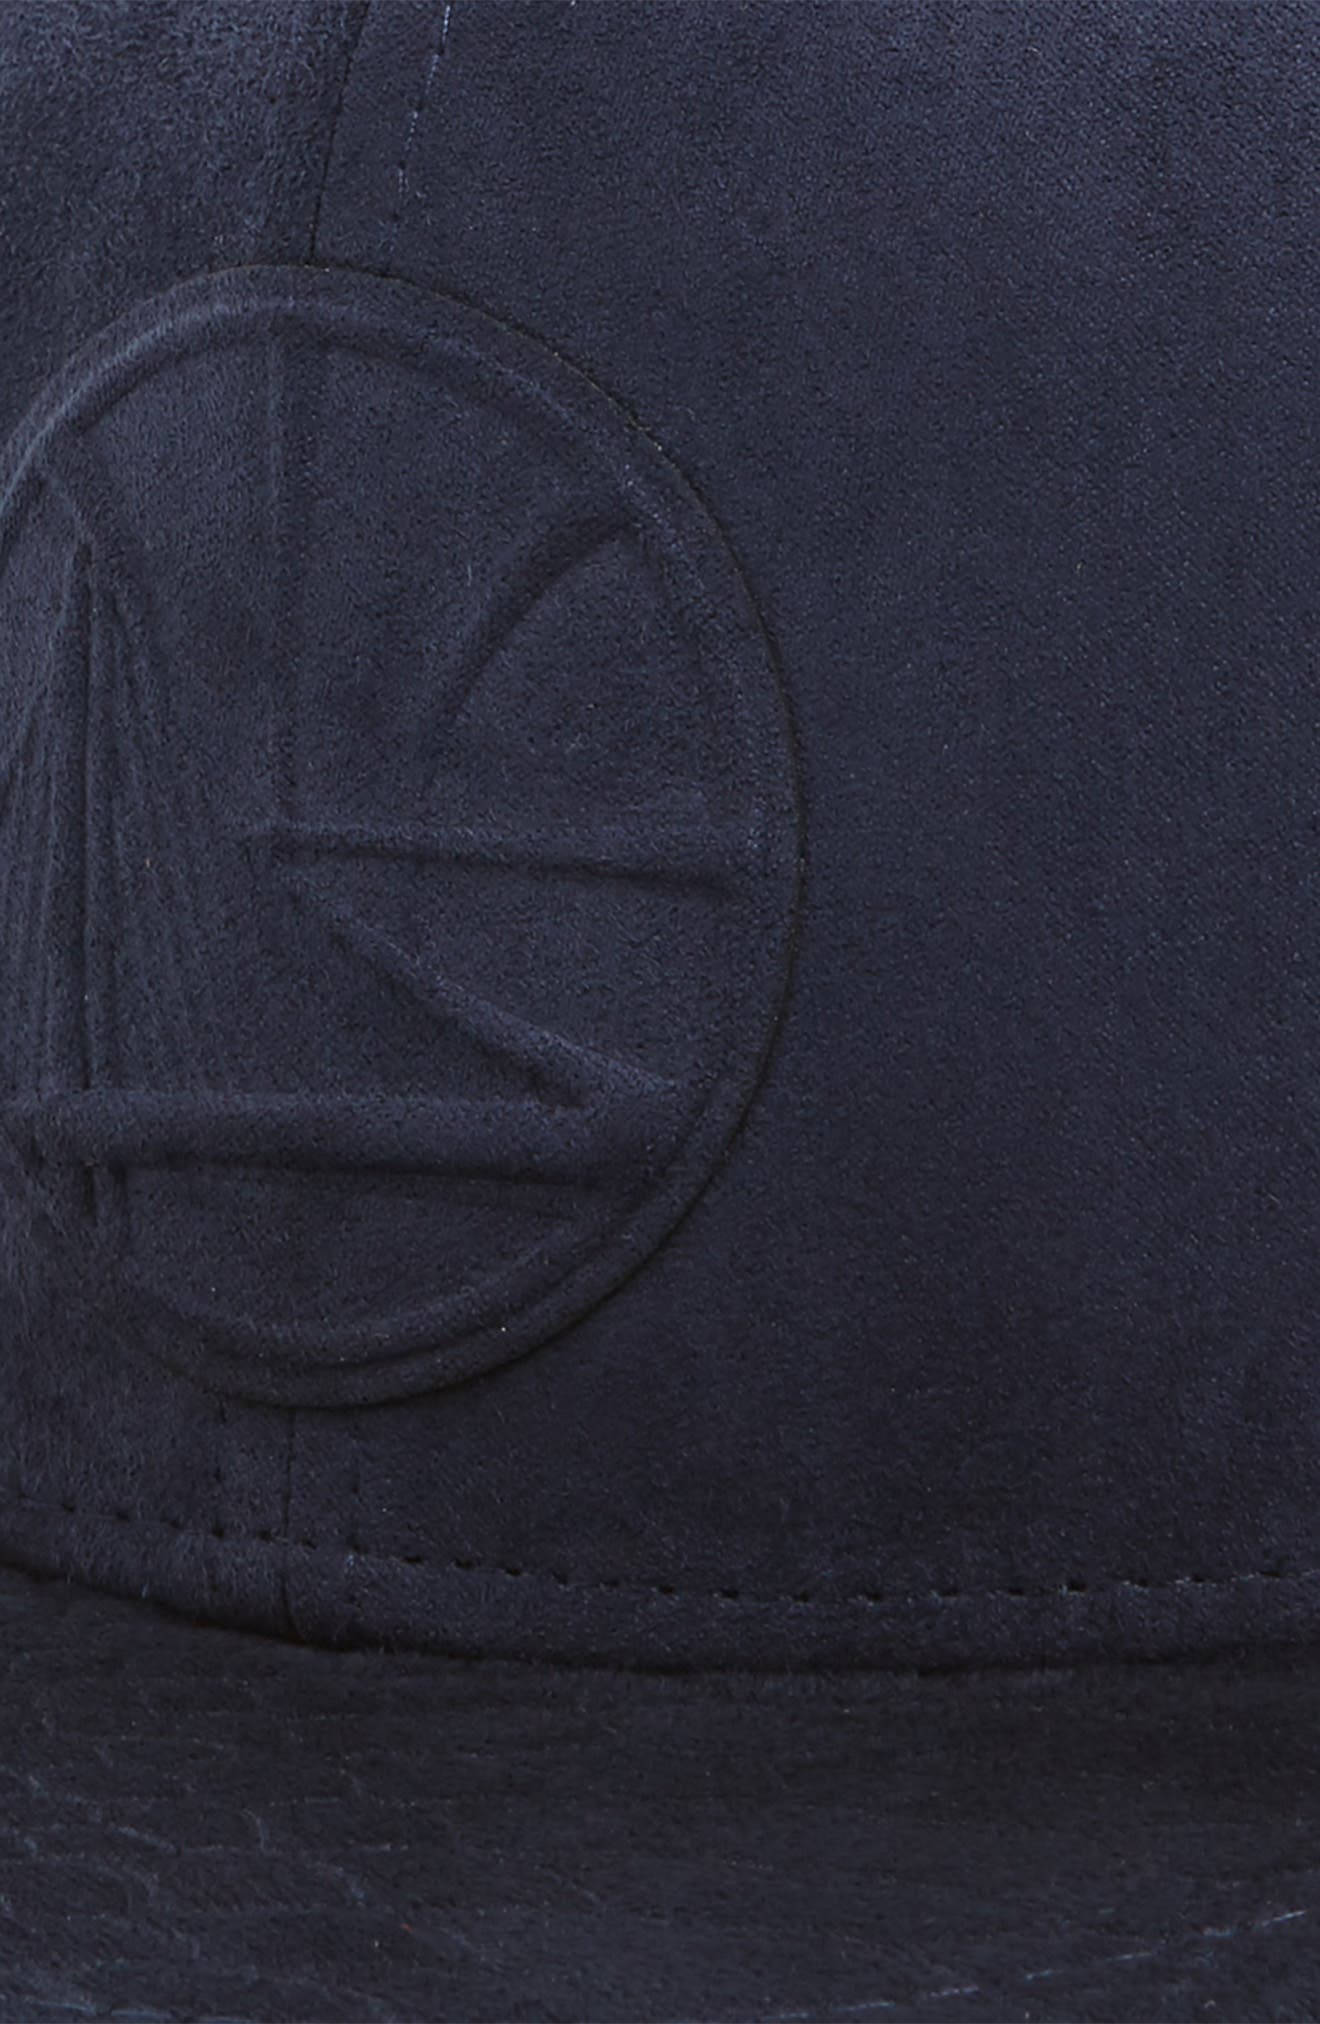 NBA Baseball Cap,                             Alternate thumbnail 3, color,                             005